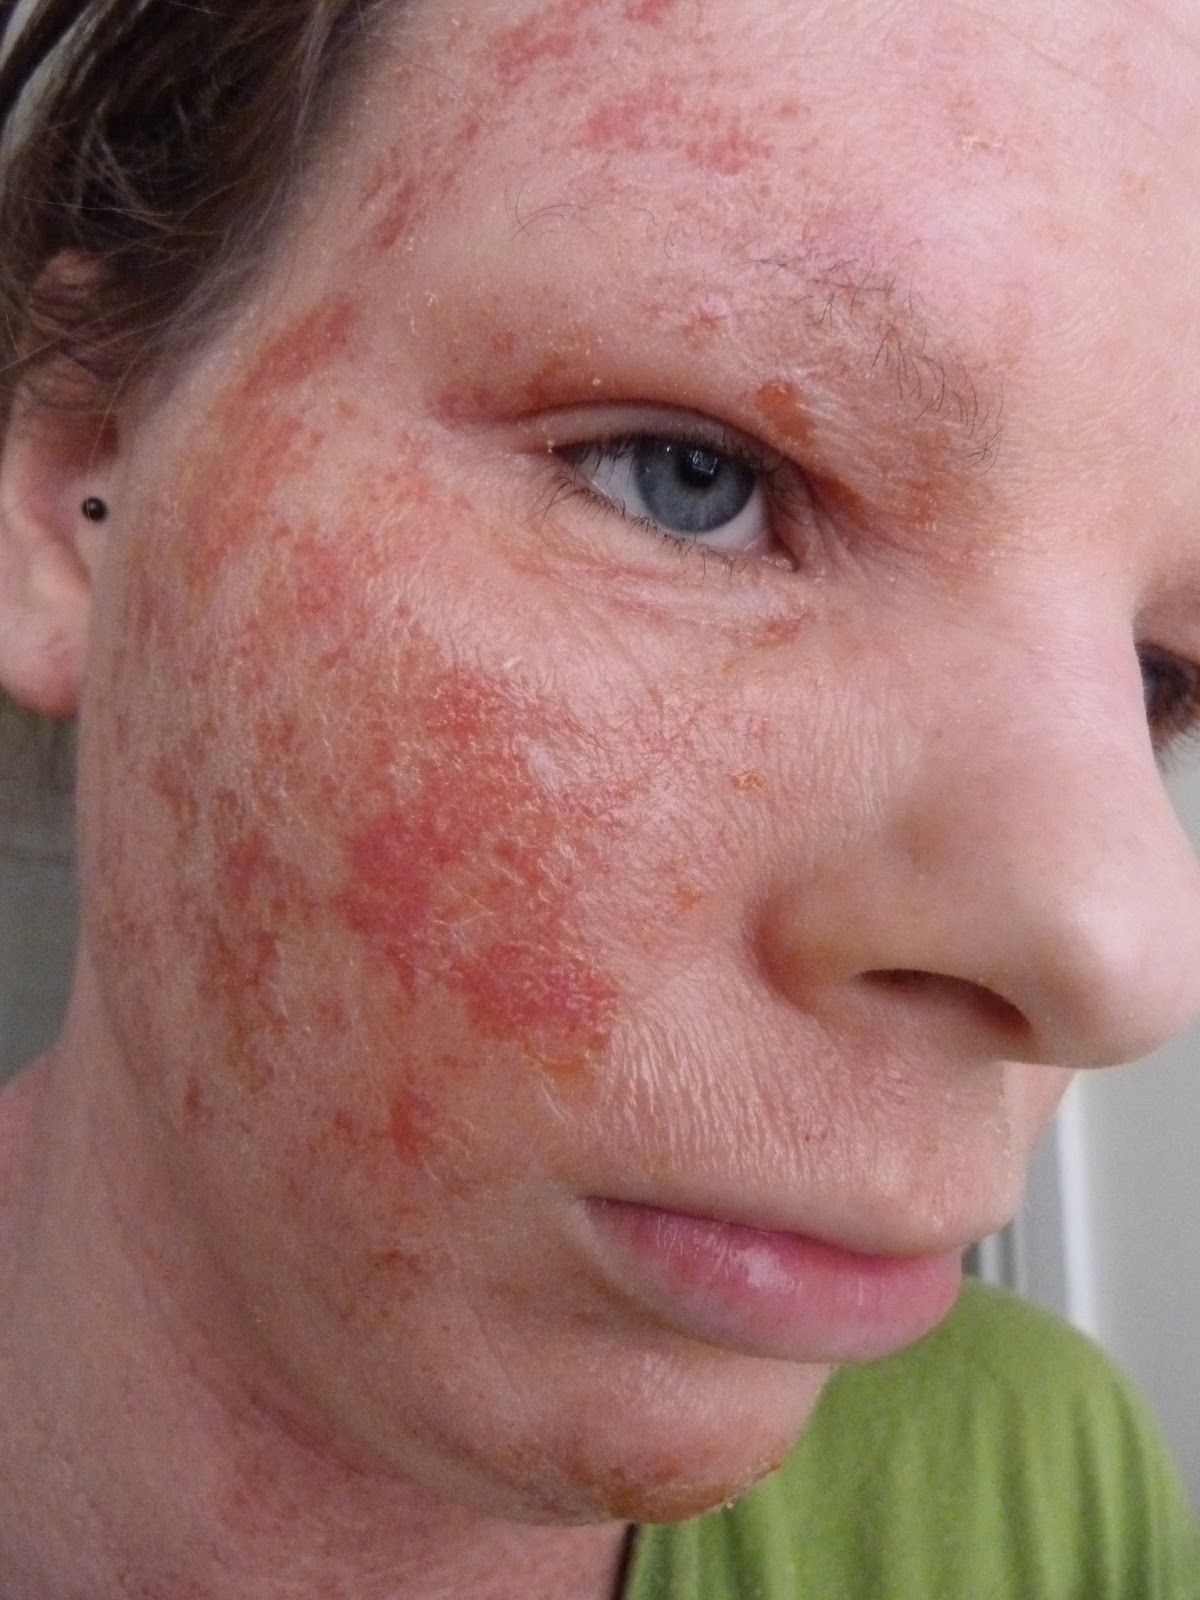 topical steroids over the counter for eczema